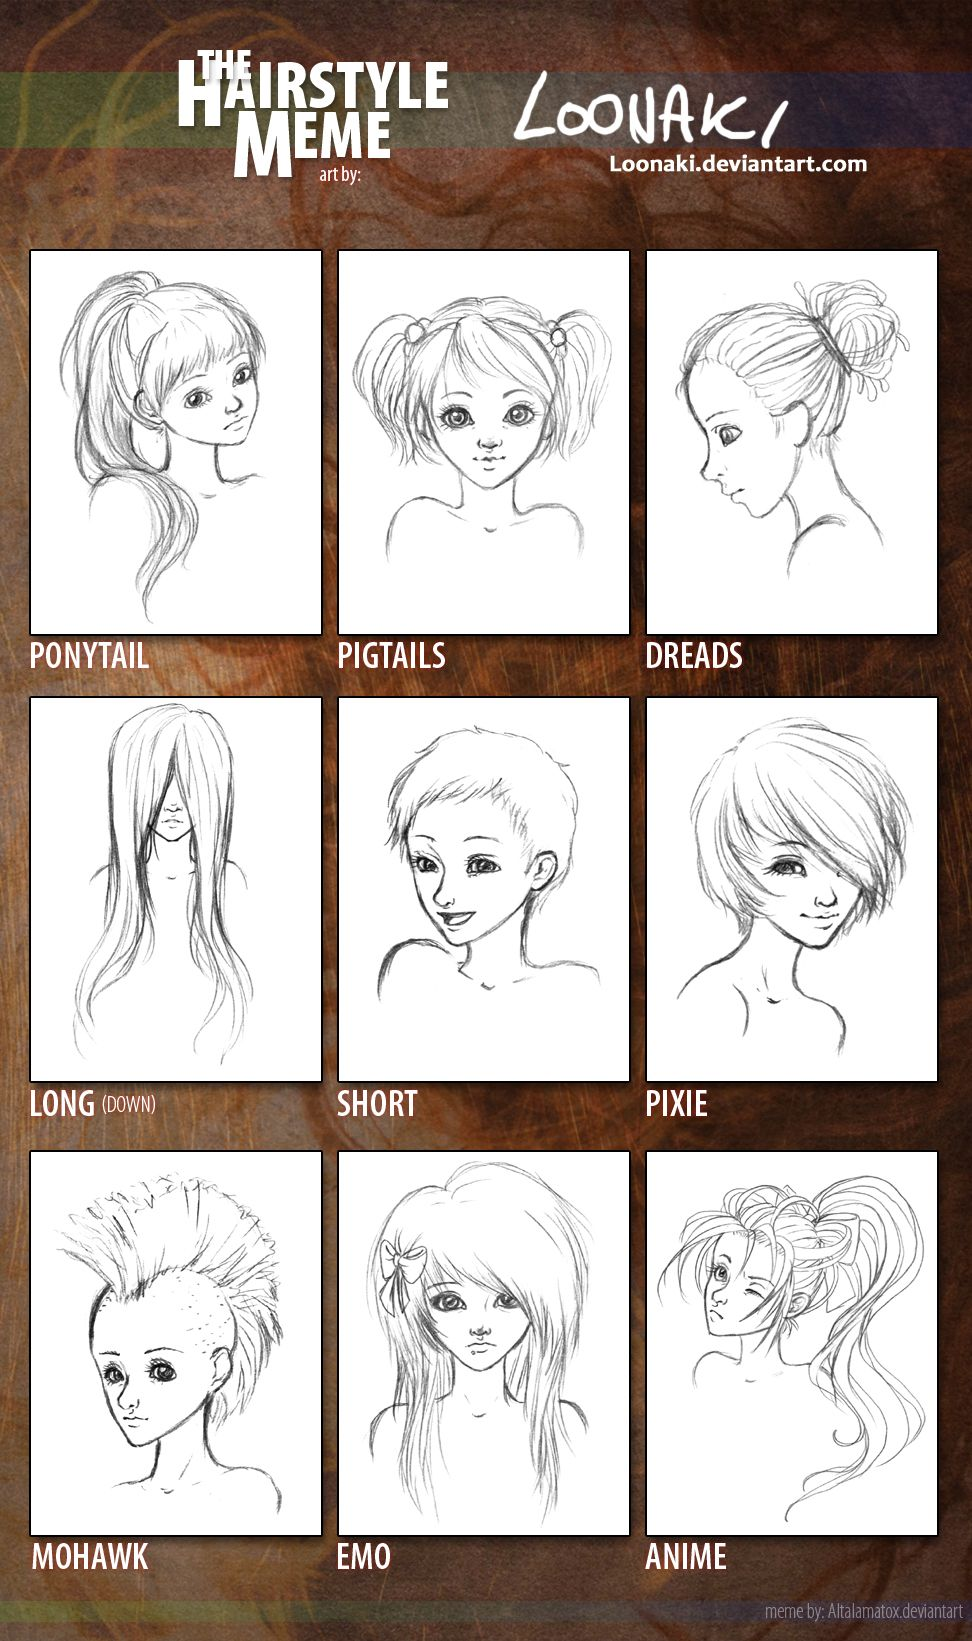 Hairstyle Meme By Loonaki On Deviantart Character Design